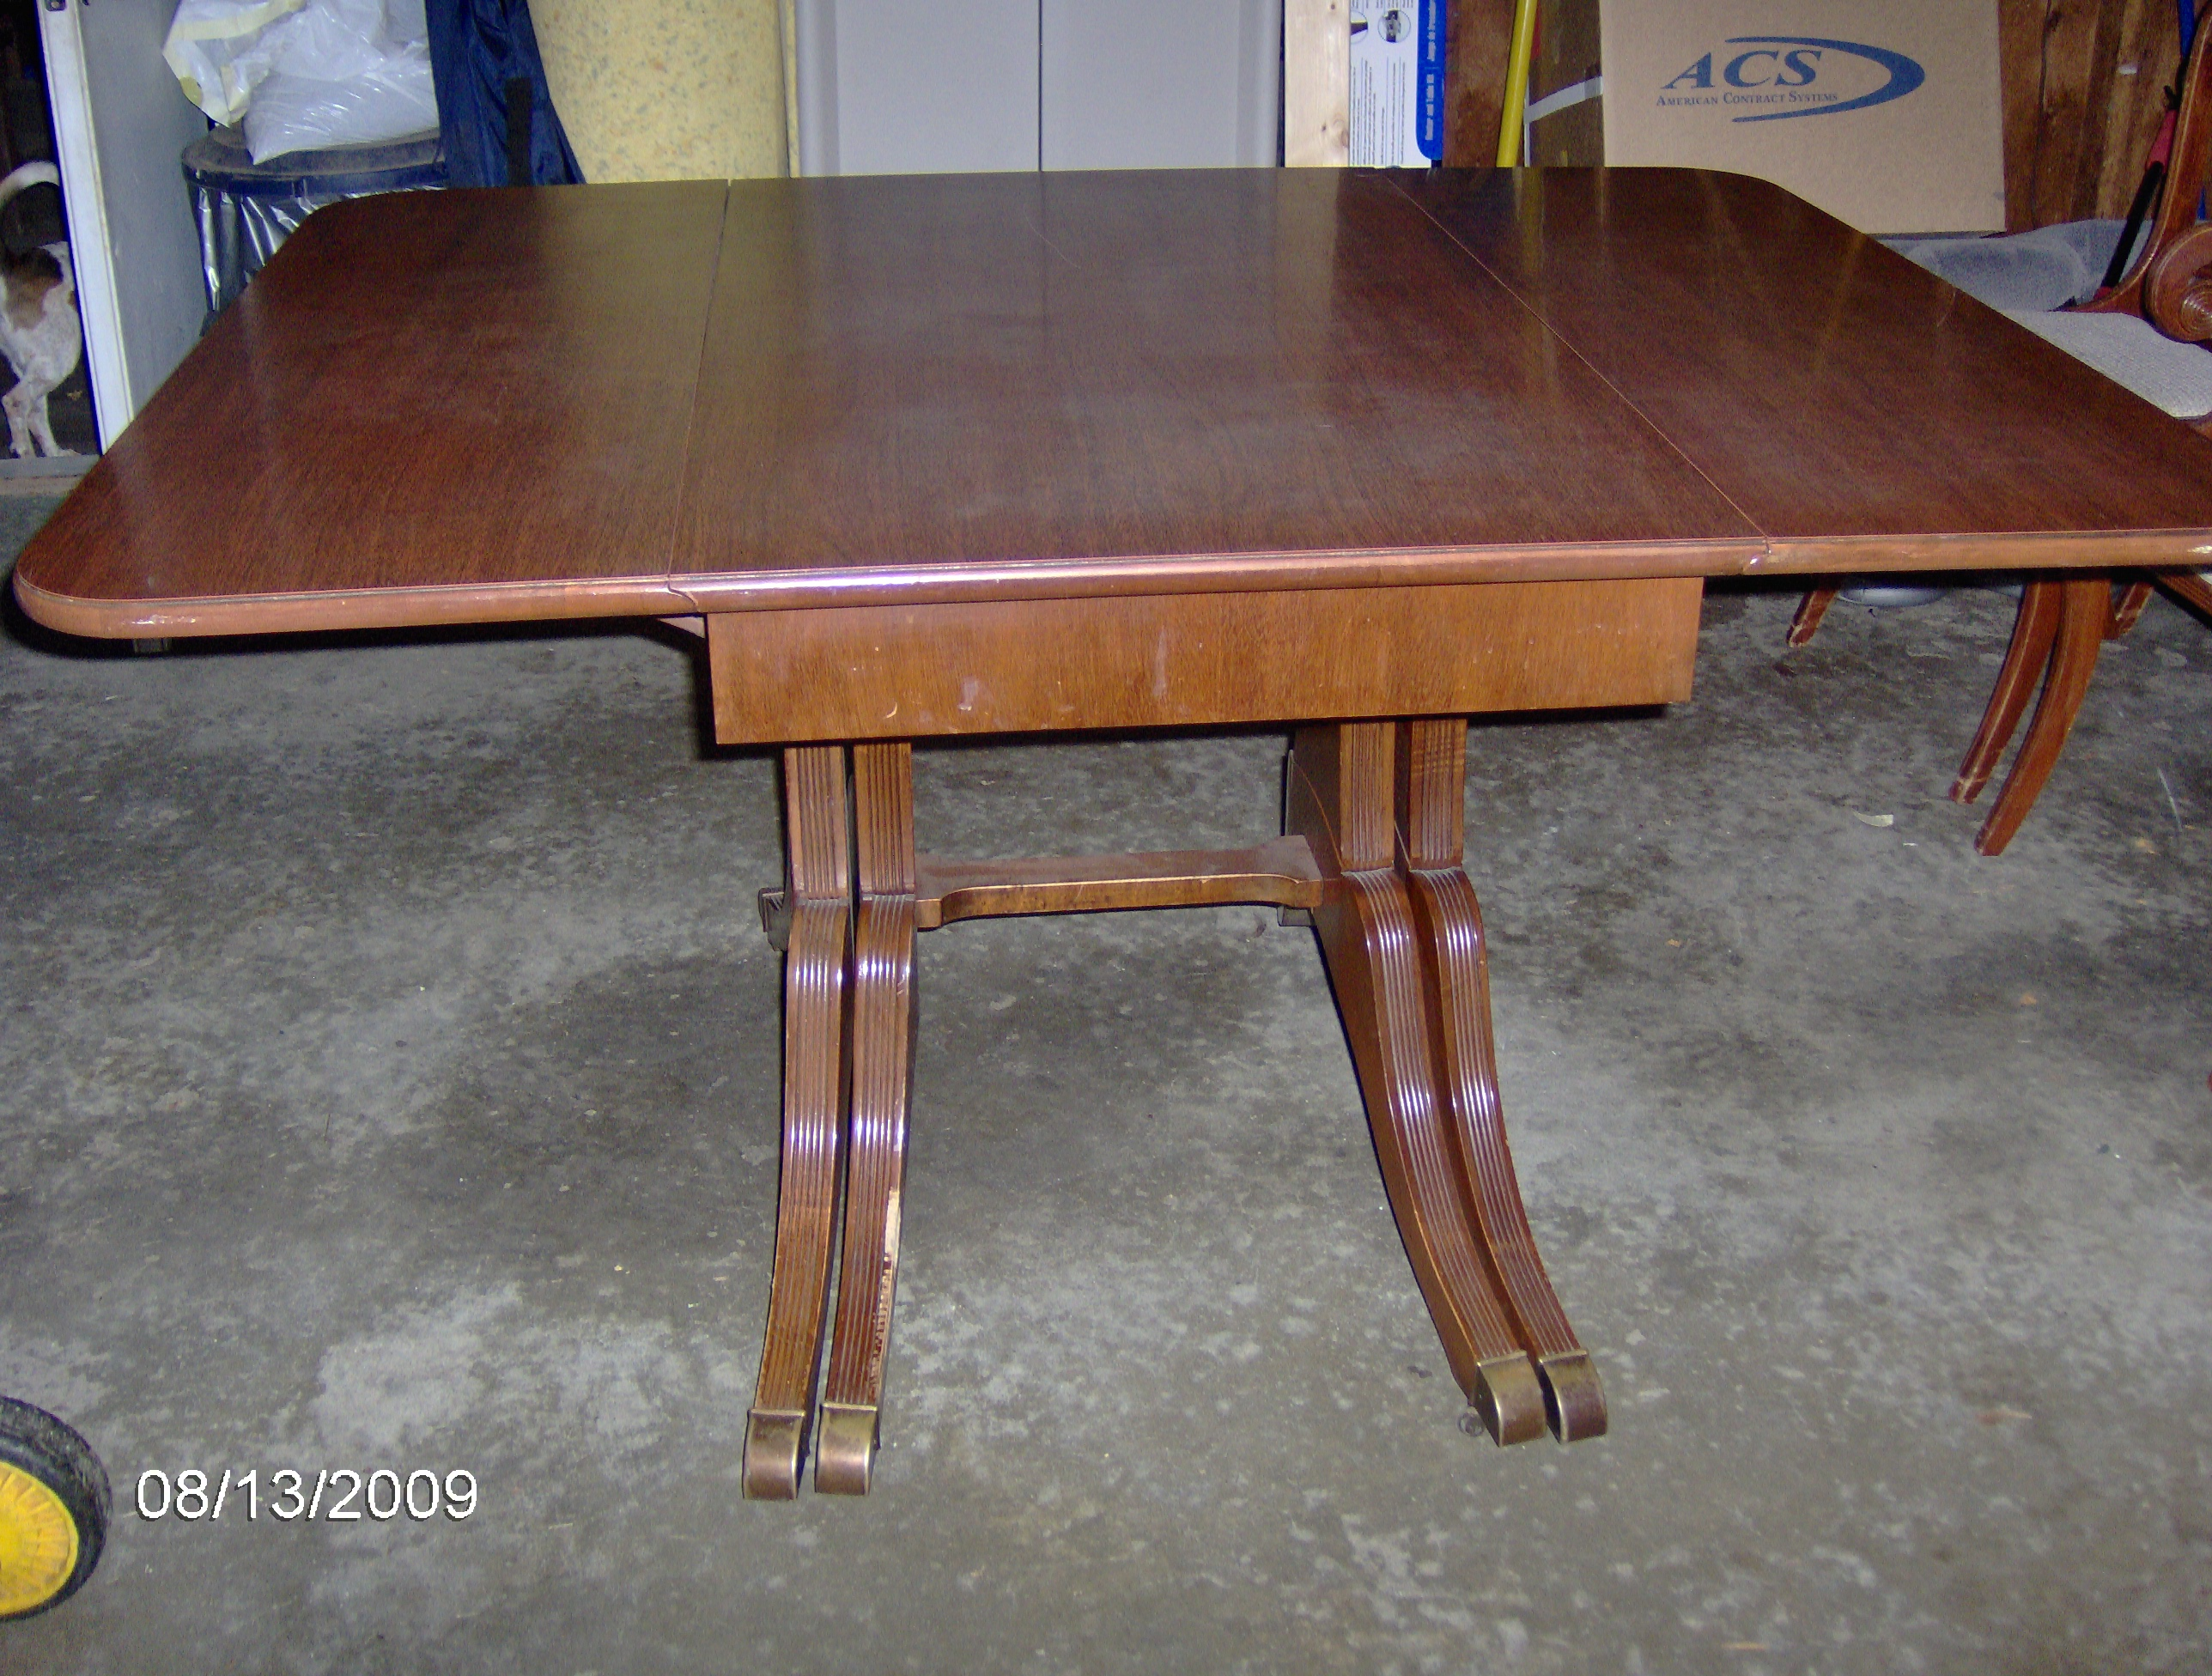 Antique Duncan Phyfe Drop Leaf Table and Chairs For Sale : Antiques.com : Classifieds